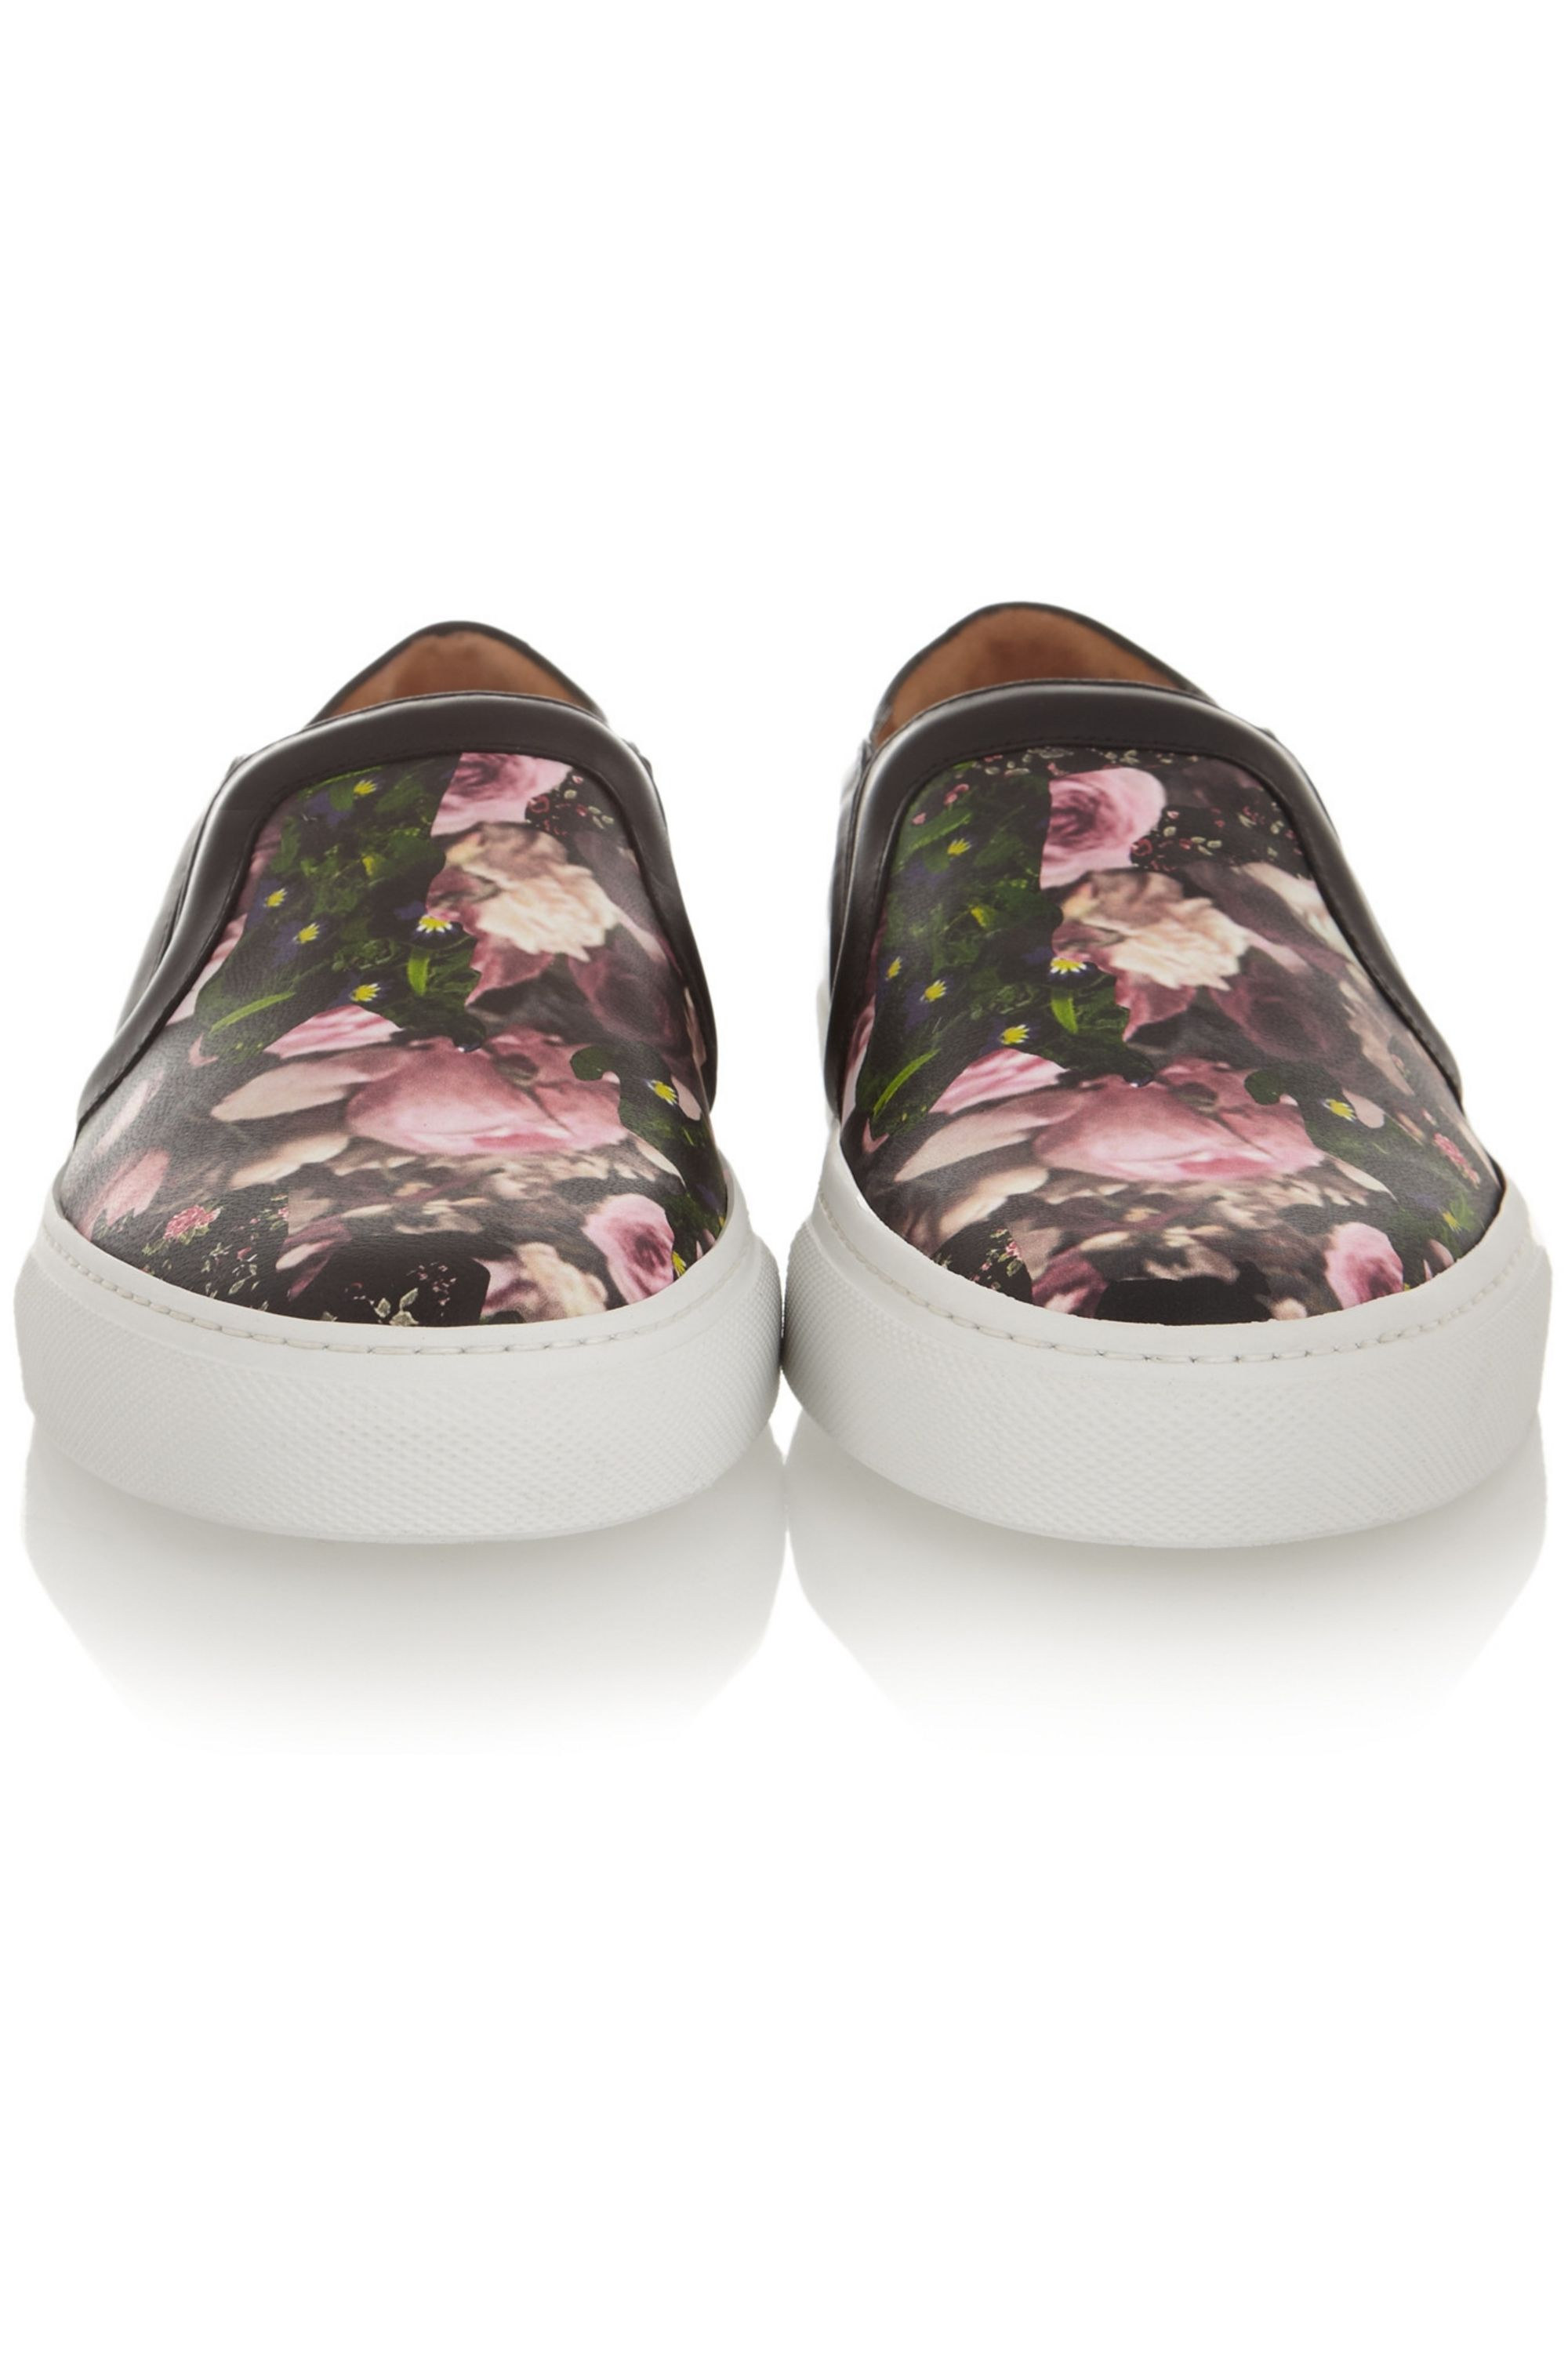 Givenchy Skate shoes in floral-print and black leather